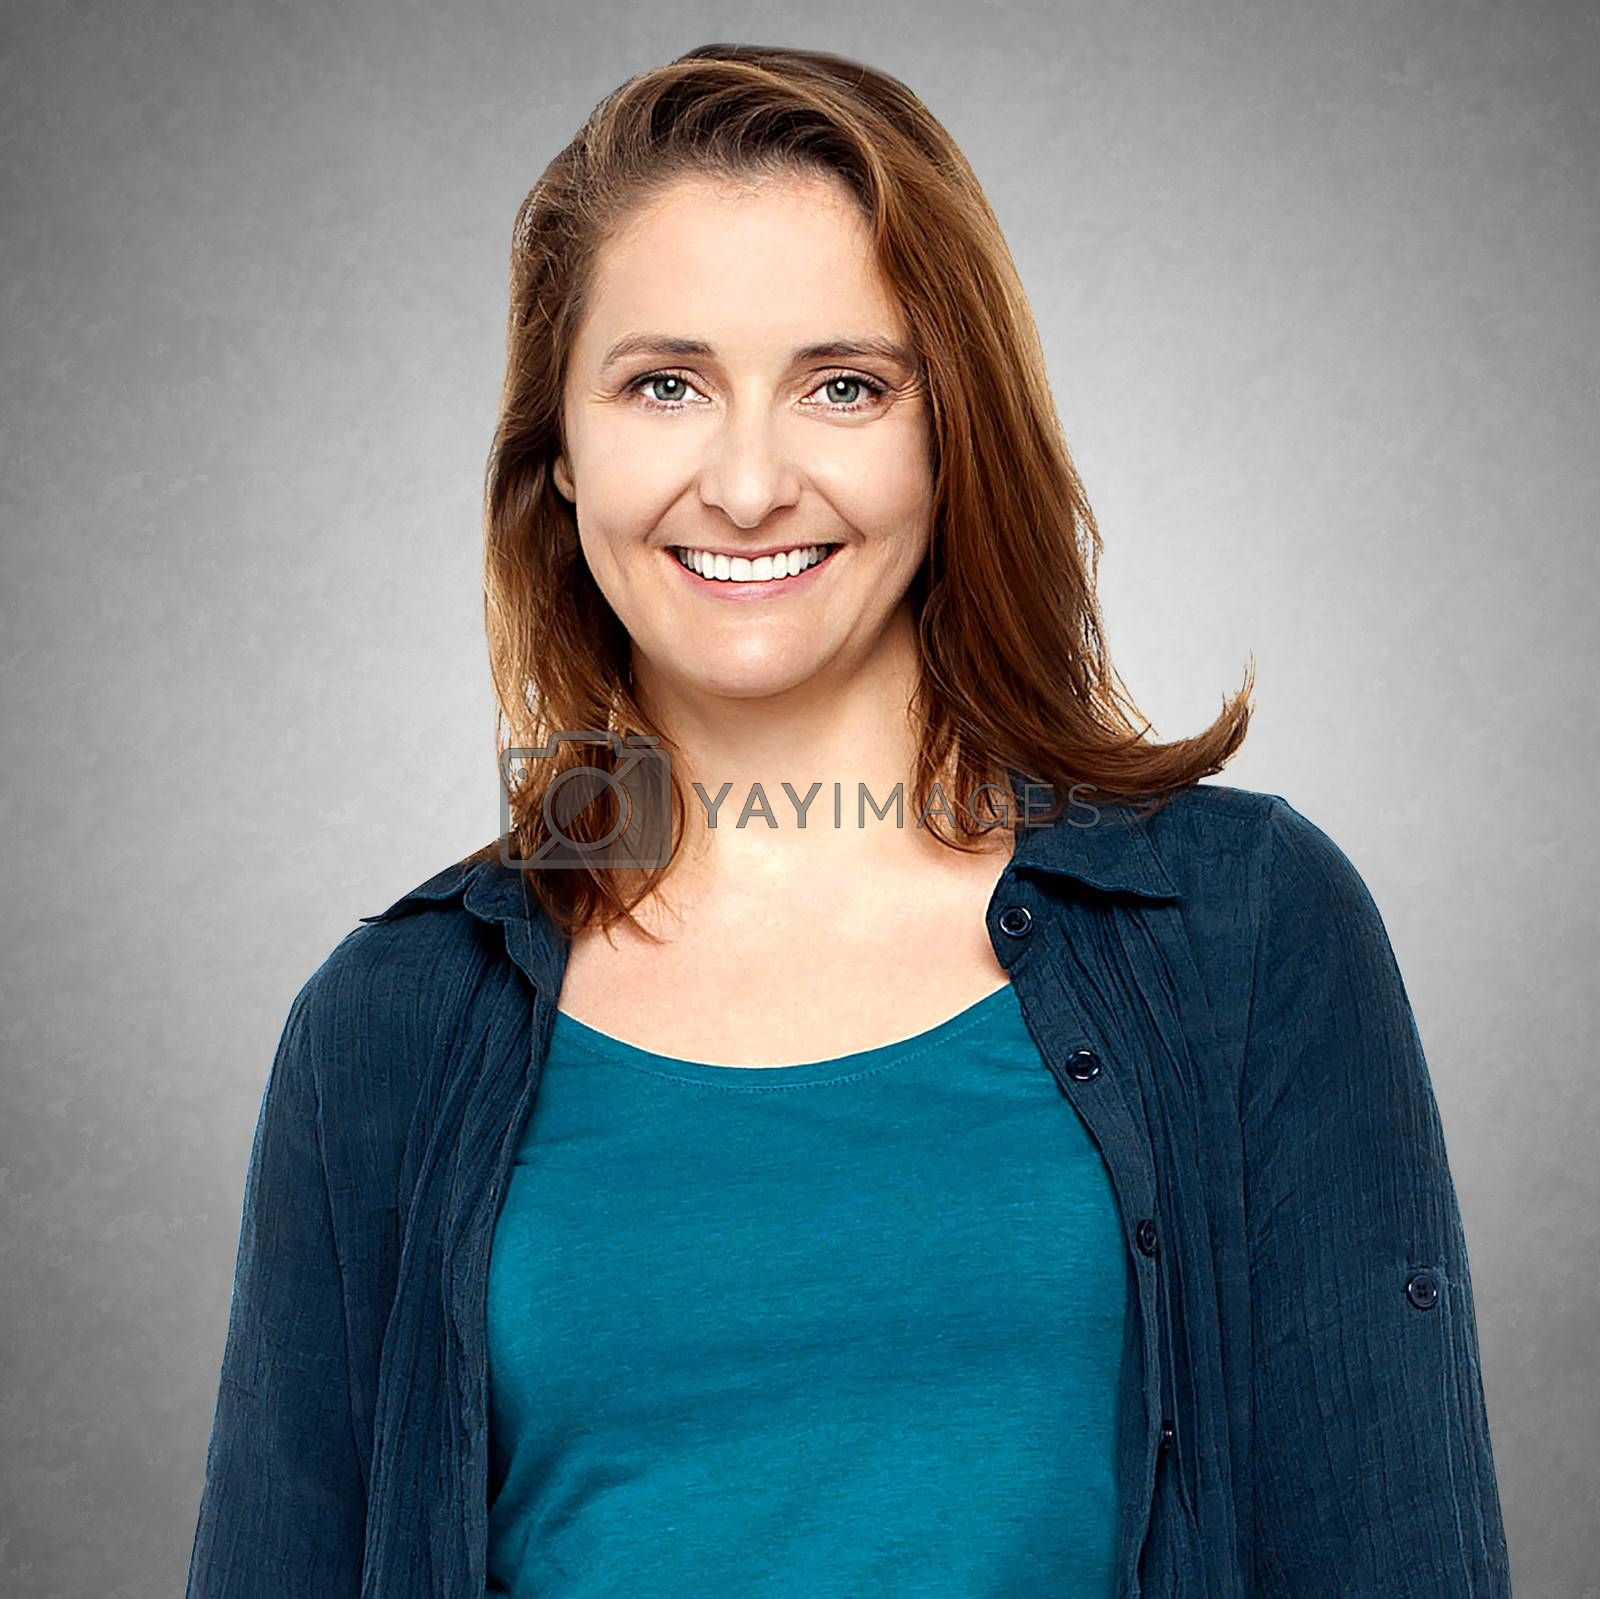 Smiling middle aged woman isolated against grey background